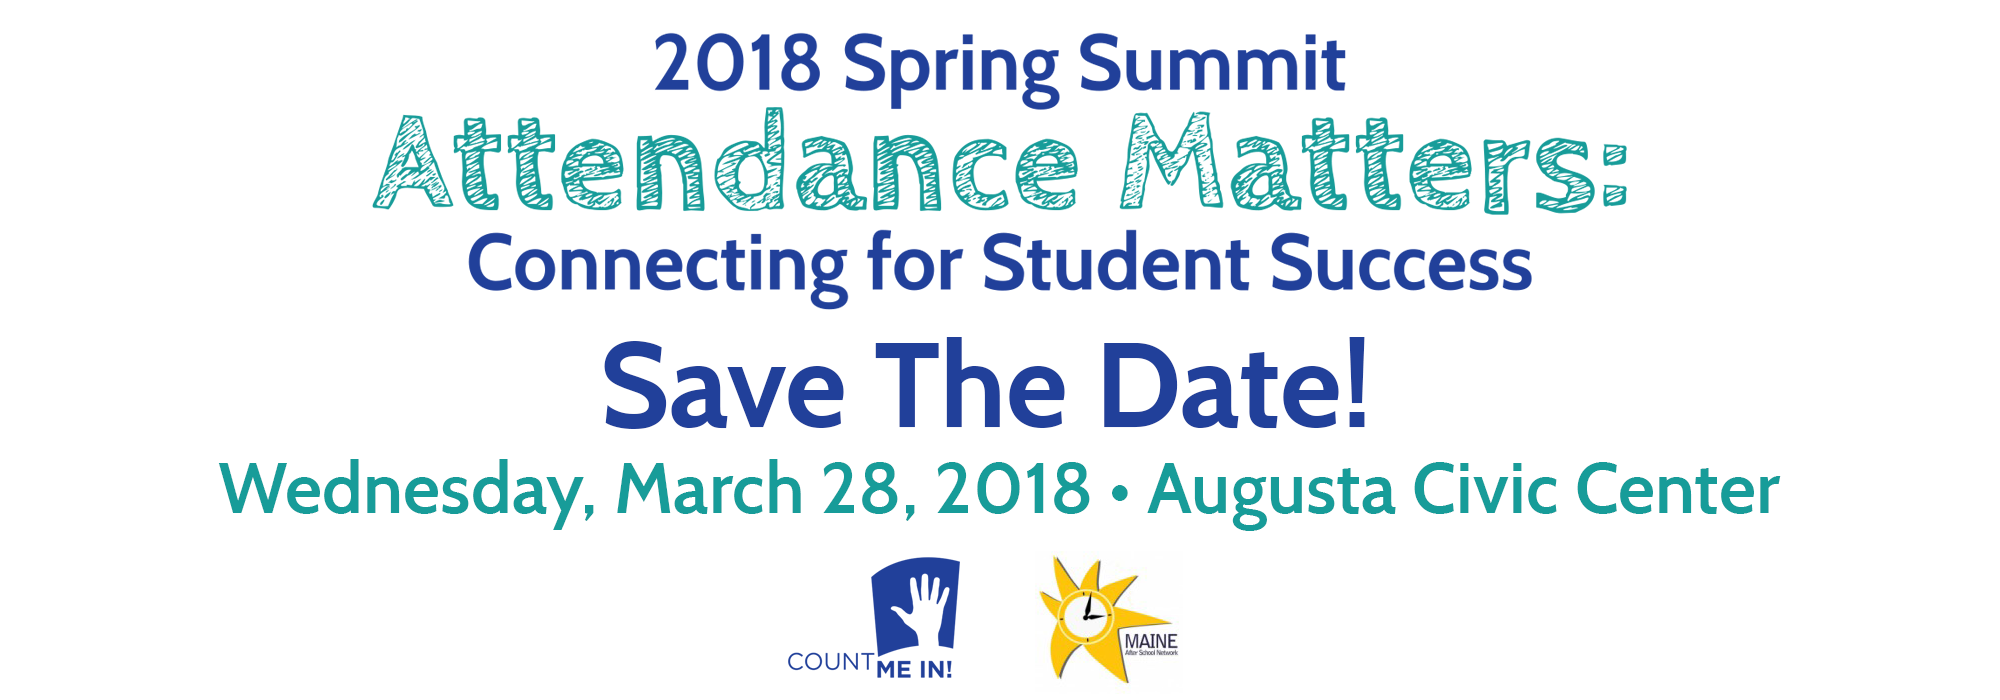 2018 Spring Summit - Attendance Matters: Connecting for Student Success - Save the Date! Wednesday, March 28, 2018 - Augusta Civic Center